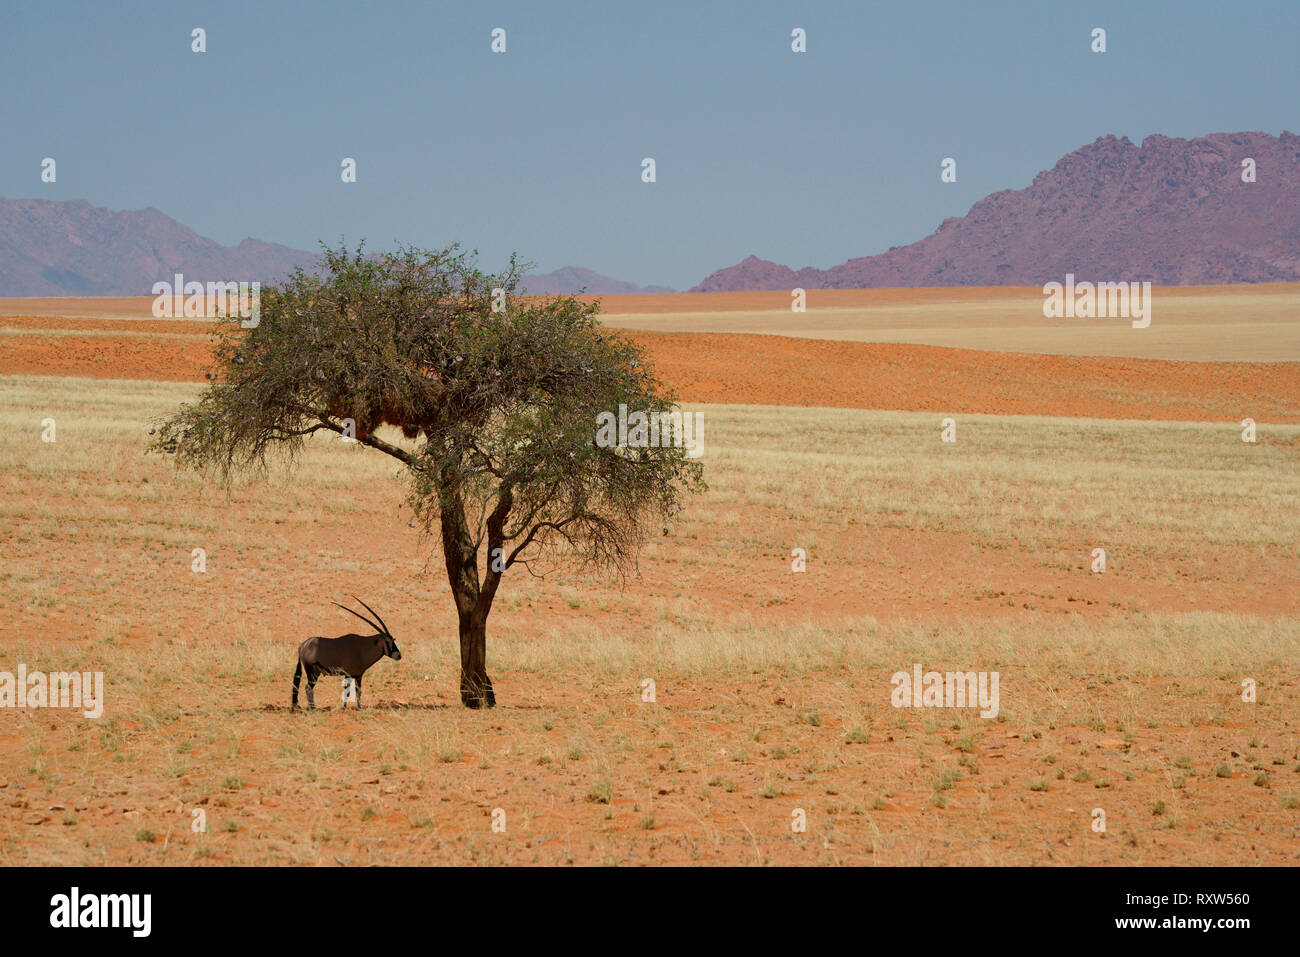 Oryx,Gemsbok,Oryx Gazella,staying cool under an Acacia tree at noon,in the Namib Rand Nature Reserve,western Namibia,Africa. The Oryx has evolved physiological adaptations allowing it to go without water for months - Stock Image